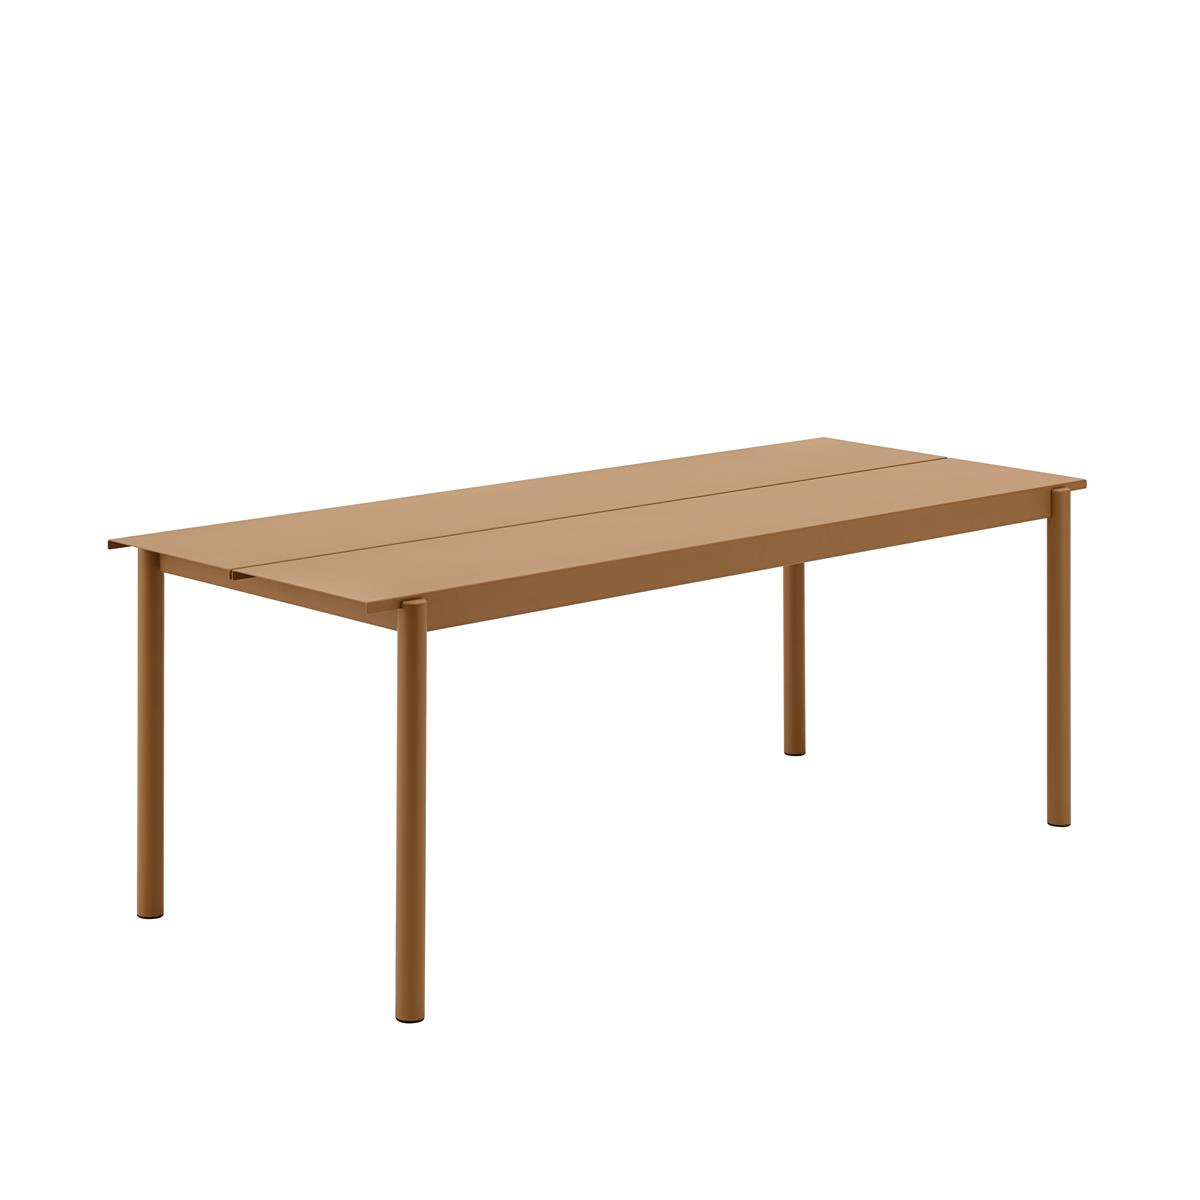 Linear Steel Table 200 x 75 x H73,5 - Burnt Orange